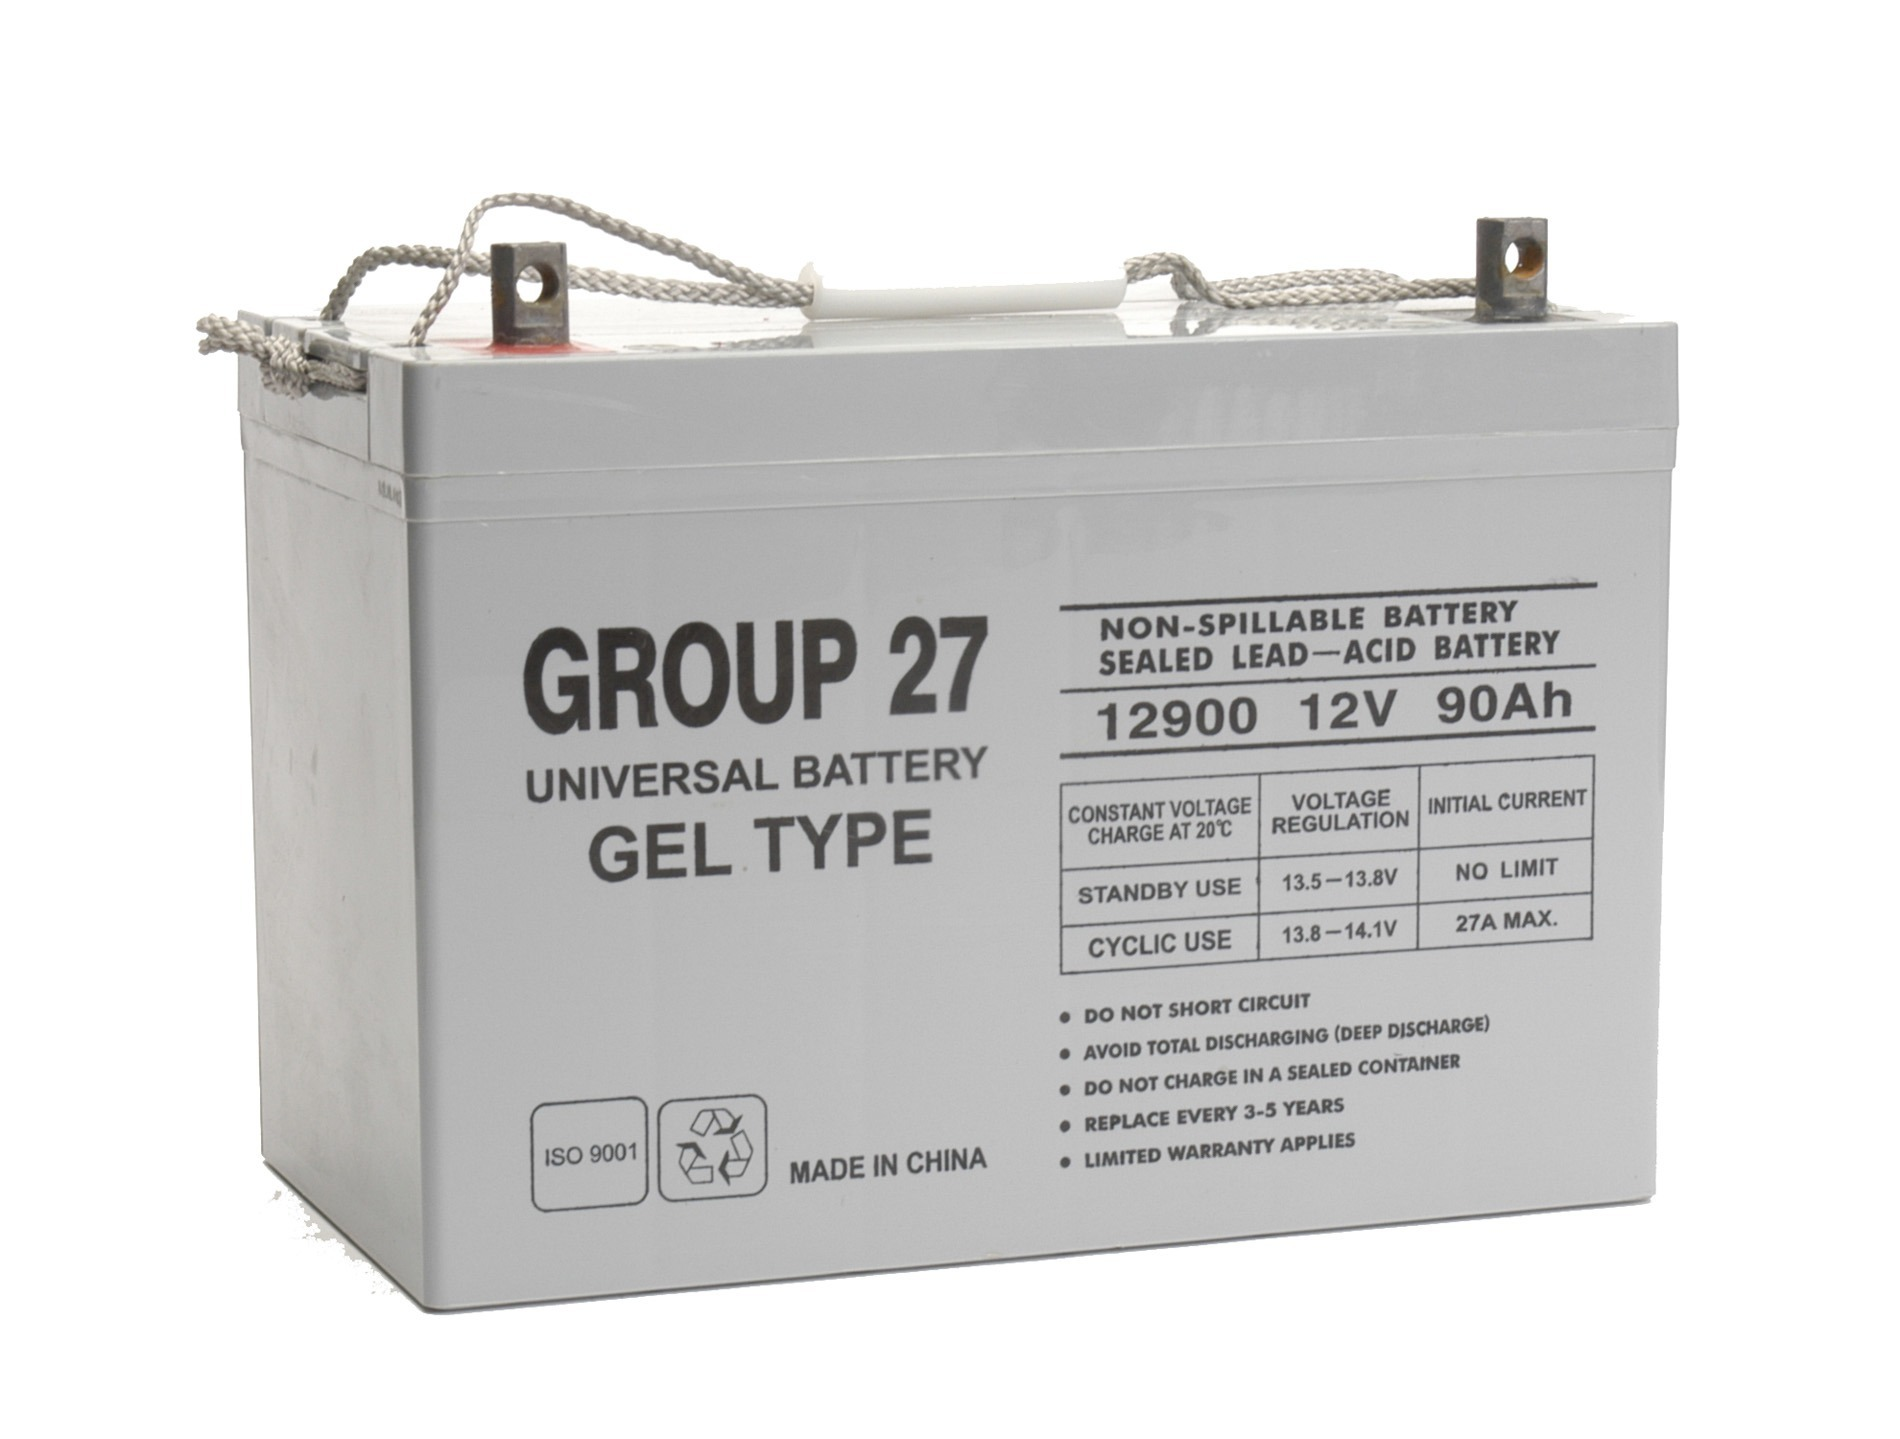 UB12900 (Group 27) 12v 90ah GEL Type Battery Replacement for Trojan T27-GEL